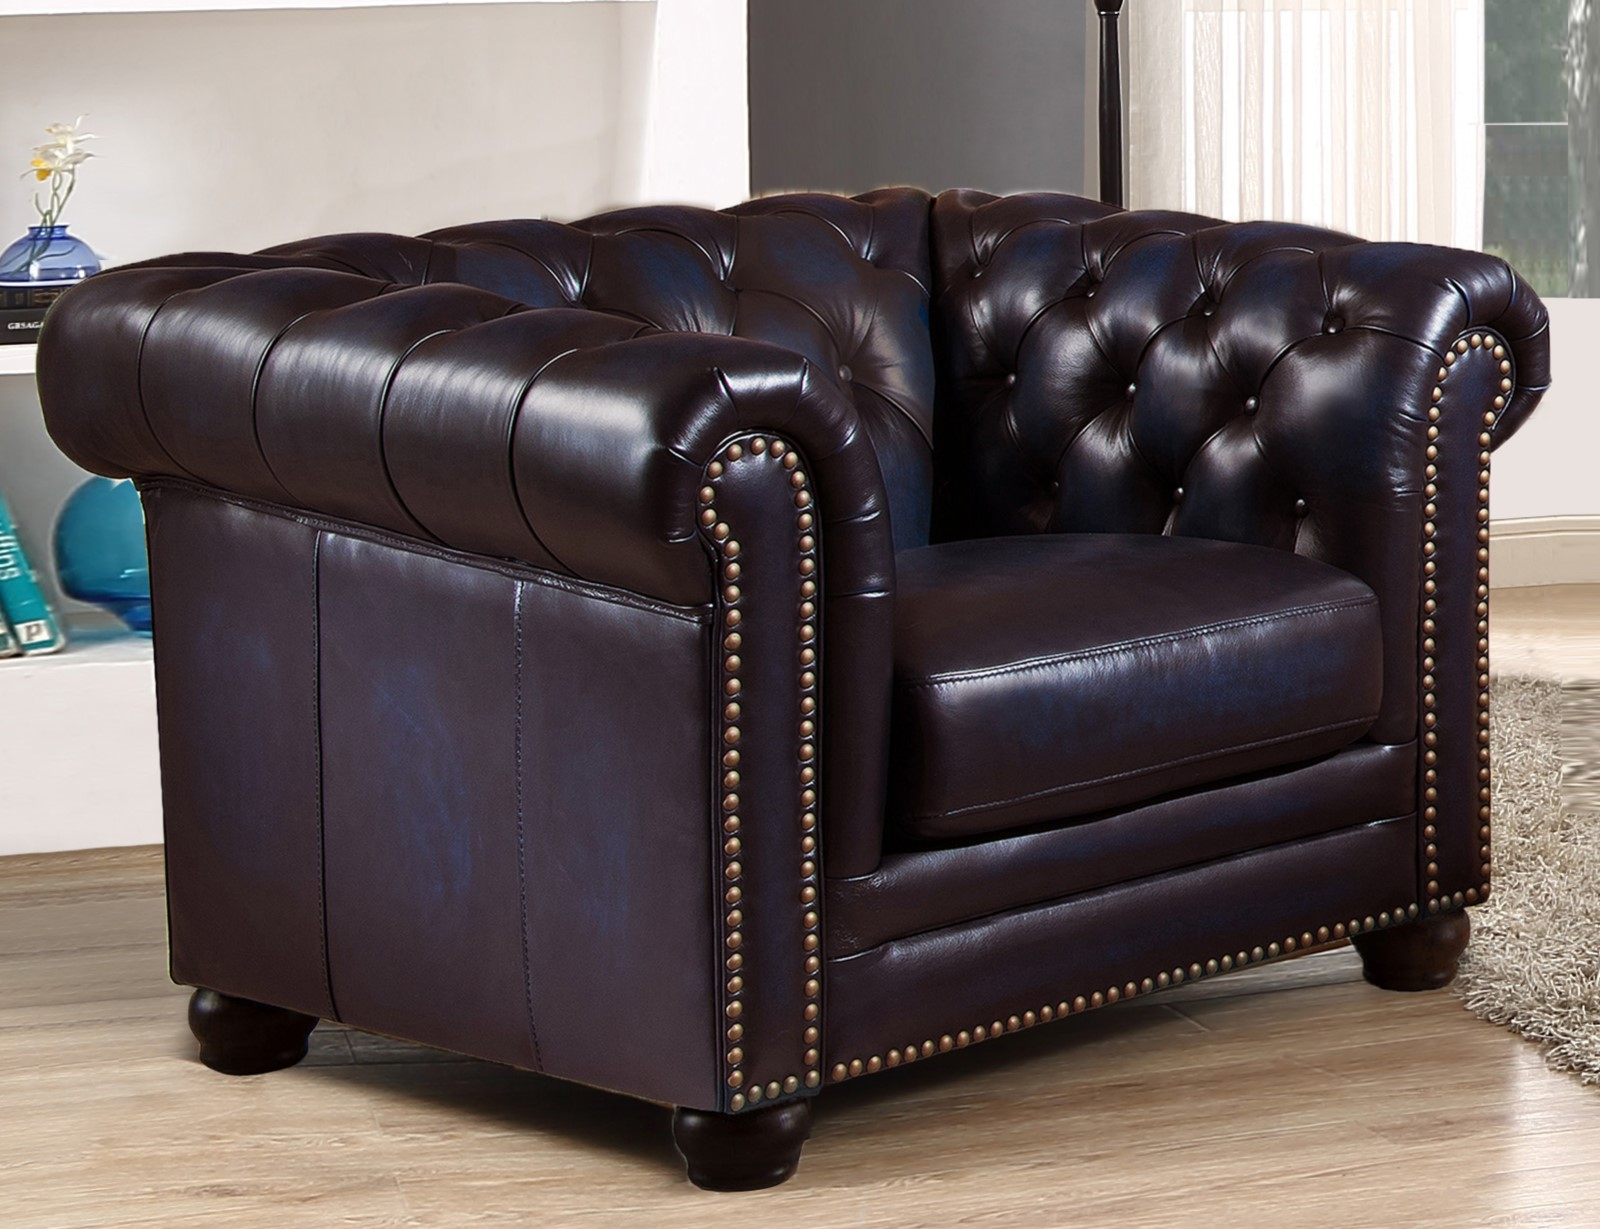 Dynasty 100% Genuine Leather Chesterfield Sofa & Armchair ...